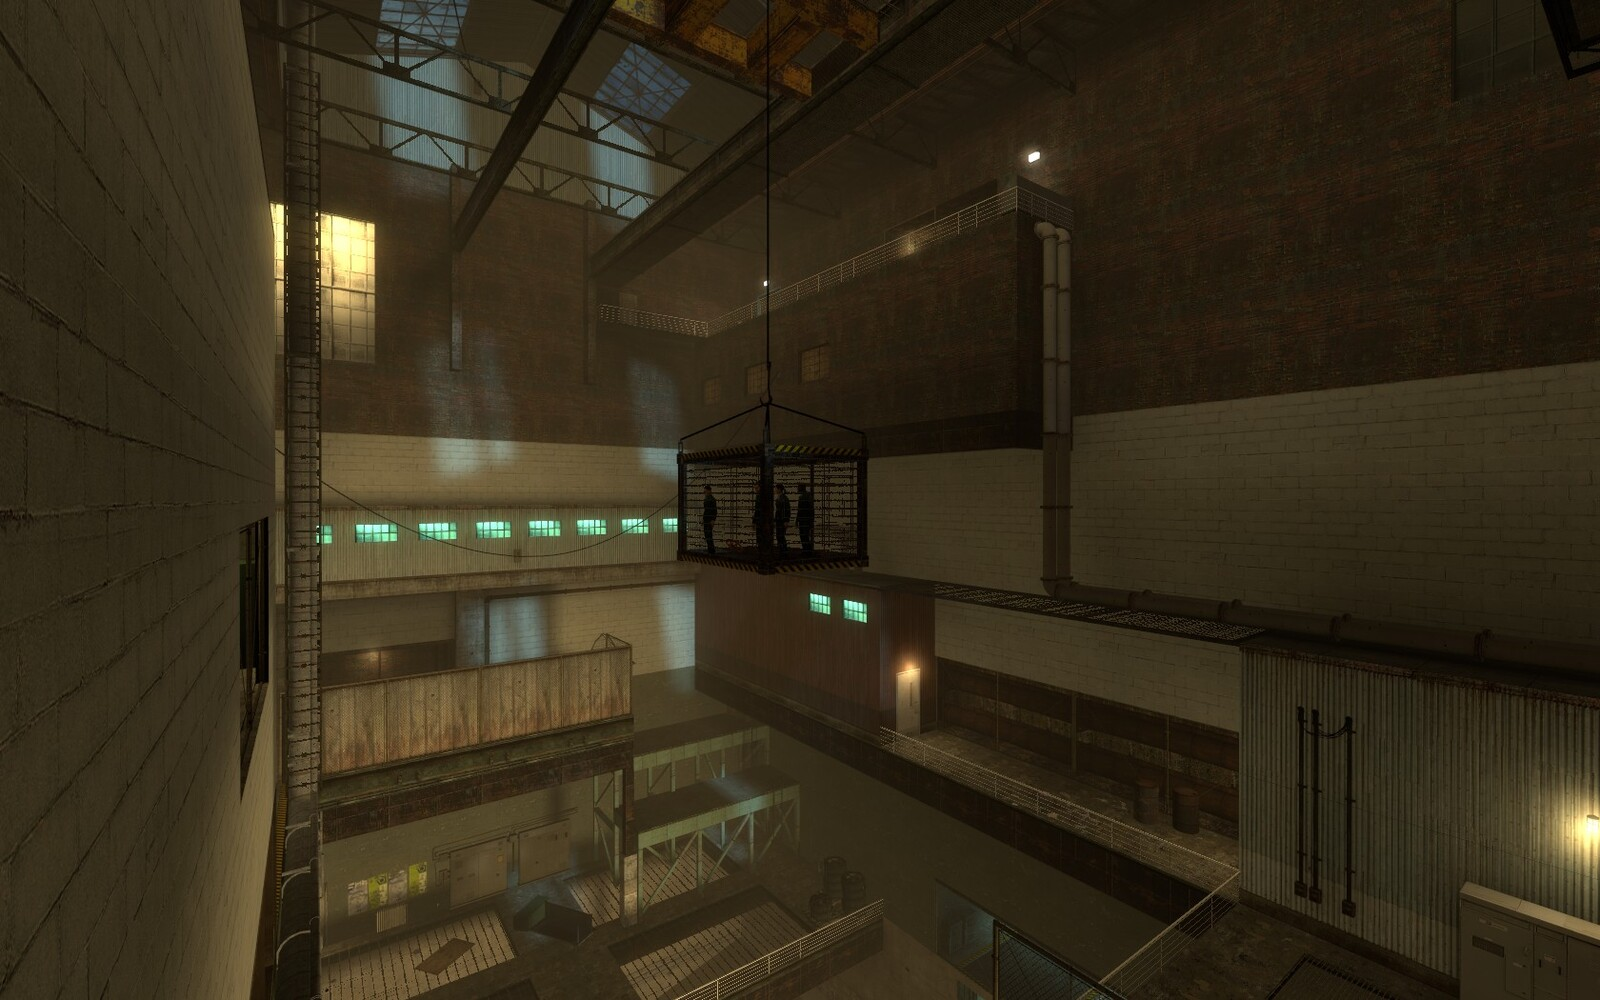 The level was built to be contained in a few areas as possible yet still contain a lot of content. A large warehouse was built to house a number of challenges for the player to take on.